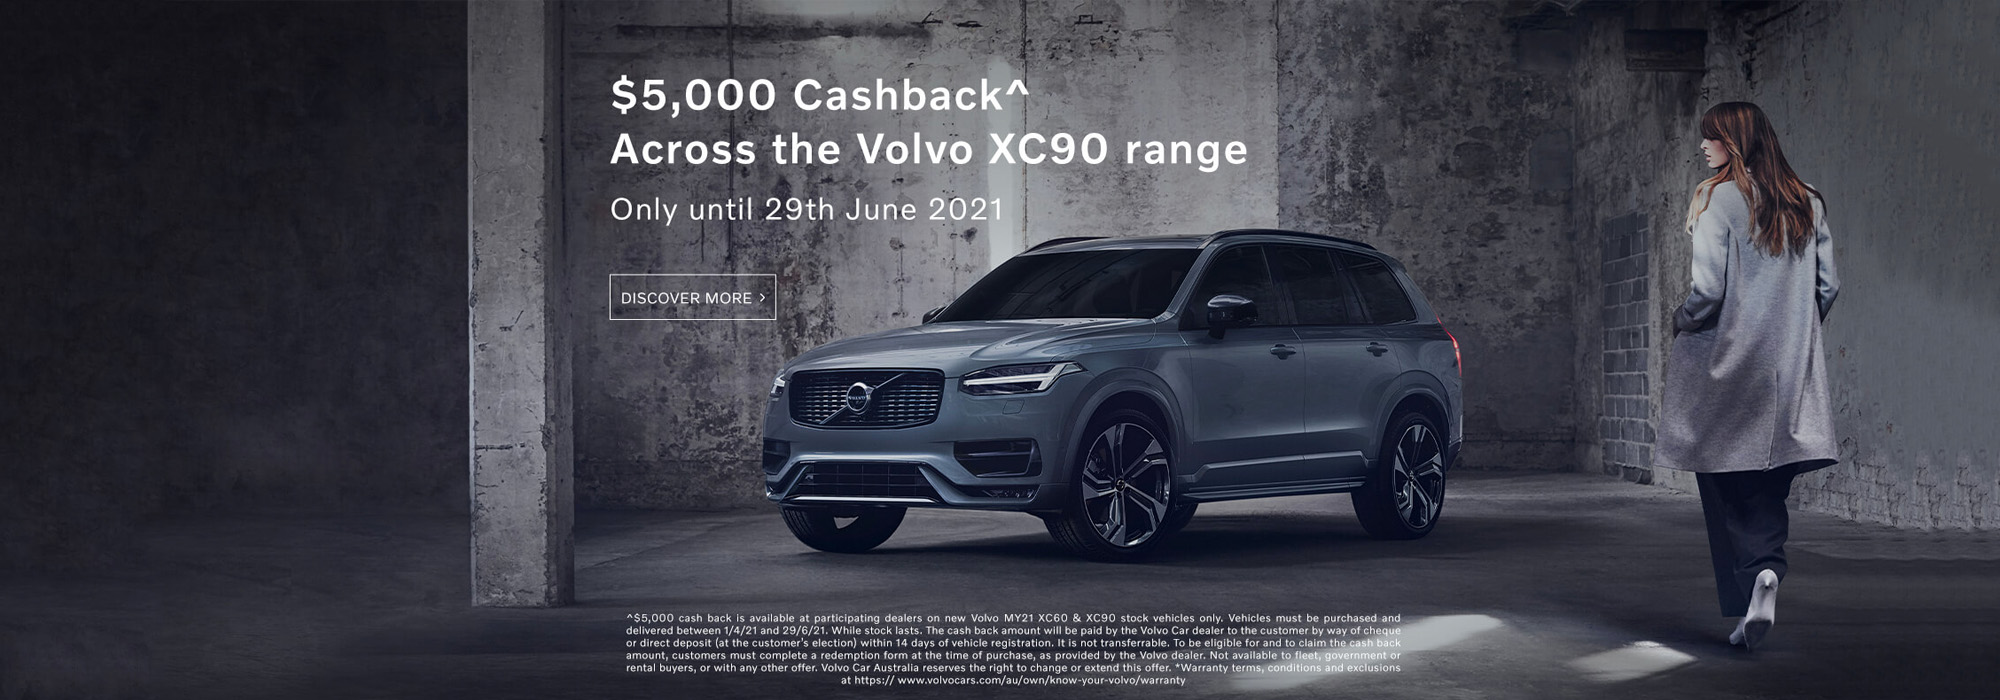 $5,000 Cashback across the XC90 range